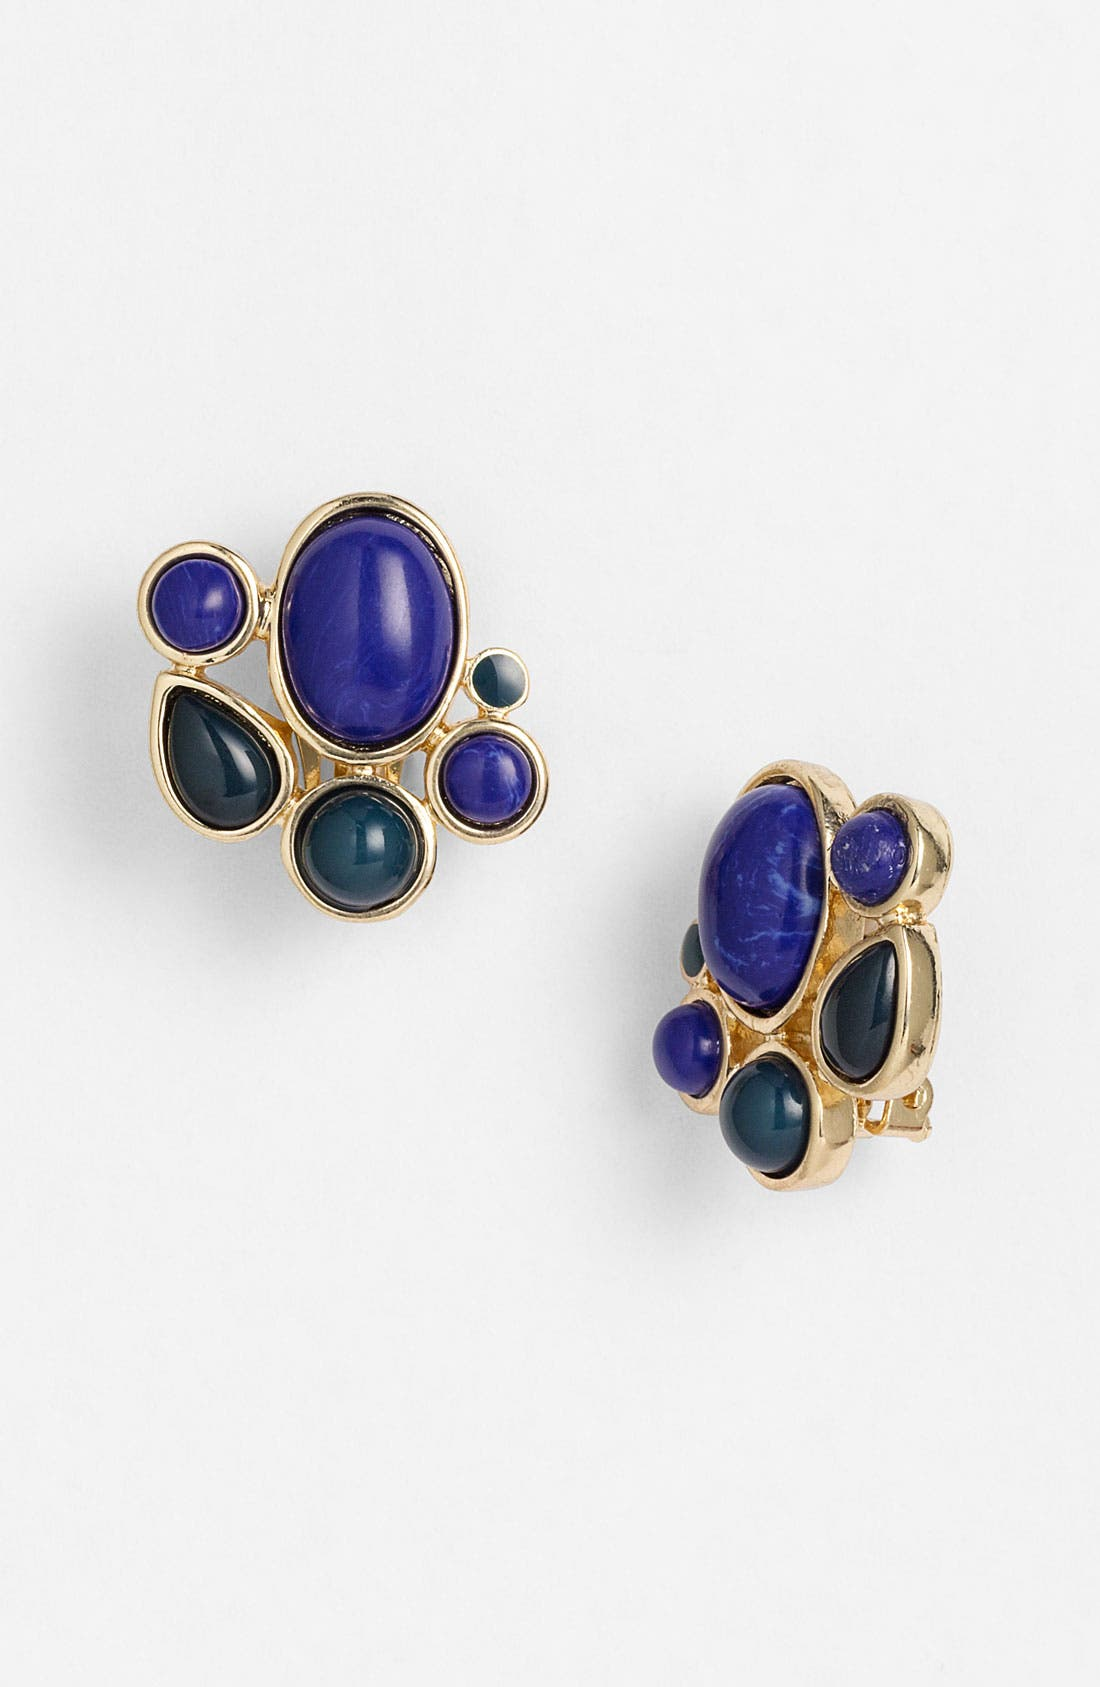 Alternate Image 1 Selected - Nordstrom 'Lapis of Luxury' Oval Clip Earrings